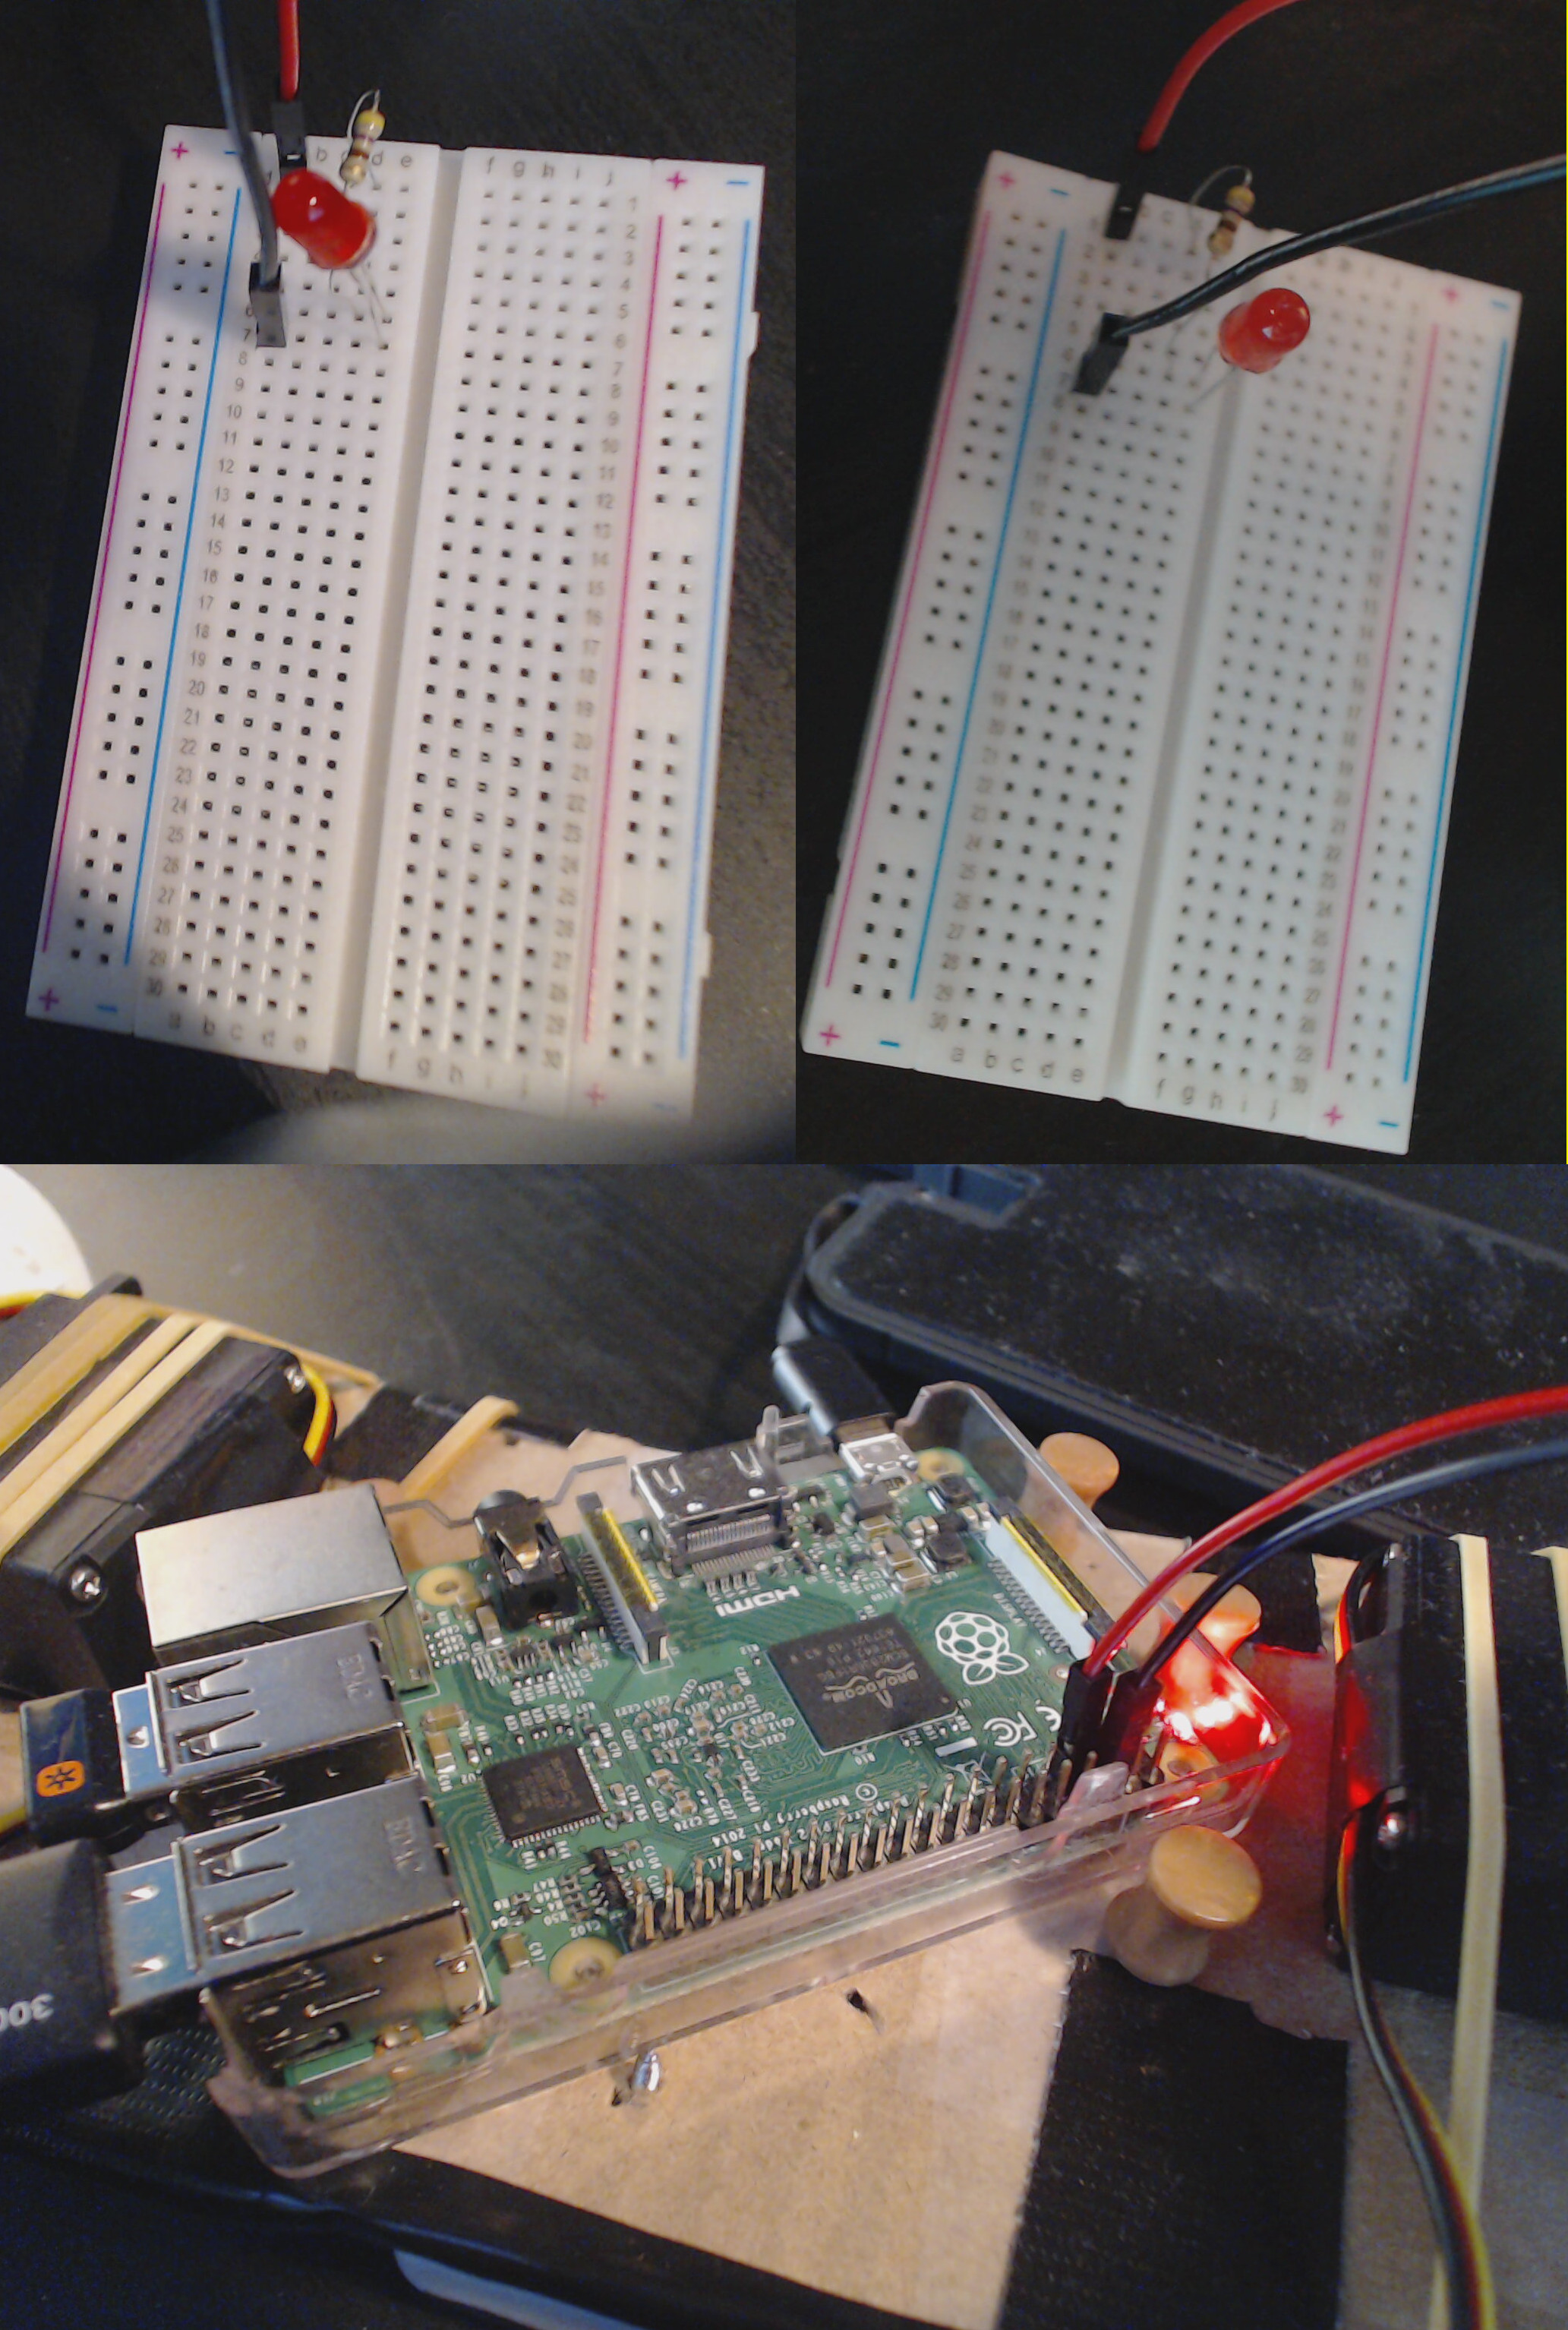 Image of a breadboard set up to light an LED via a Raspberry Pi